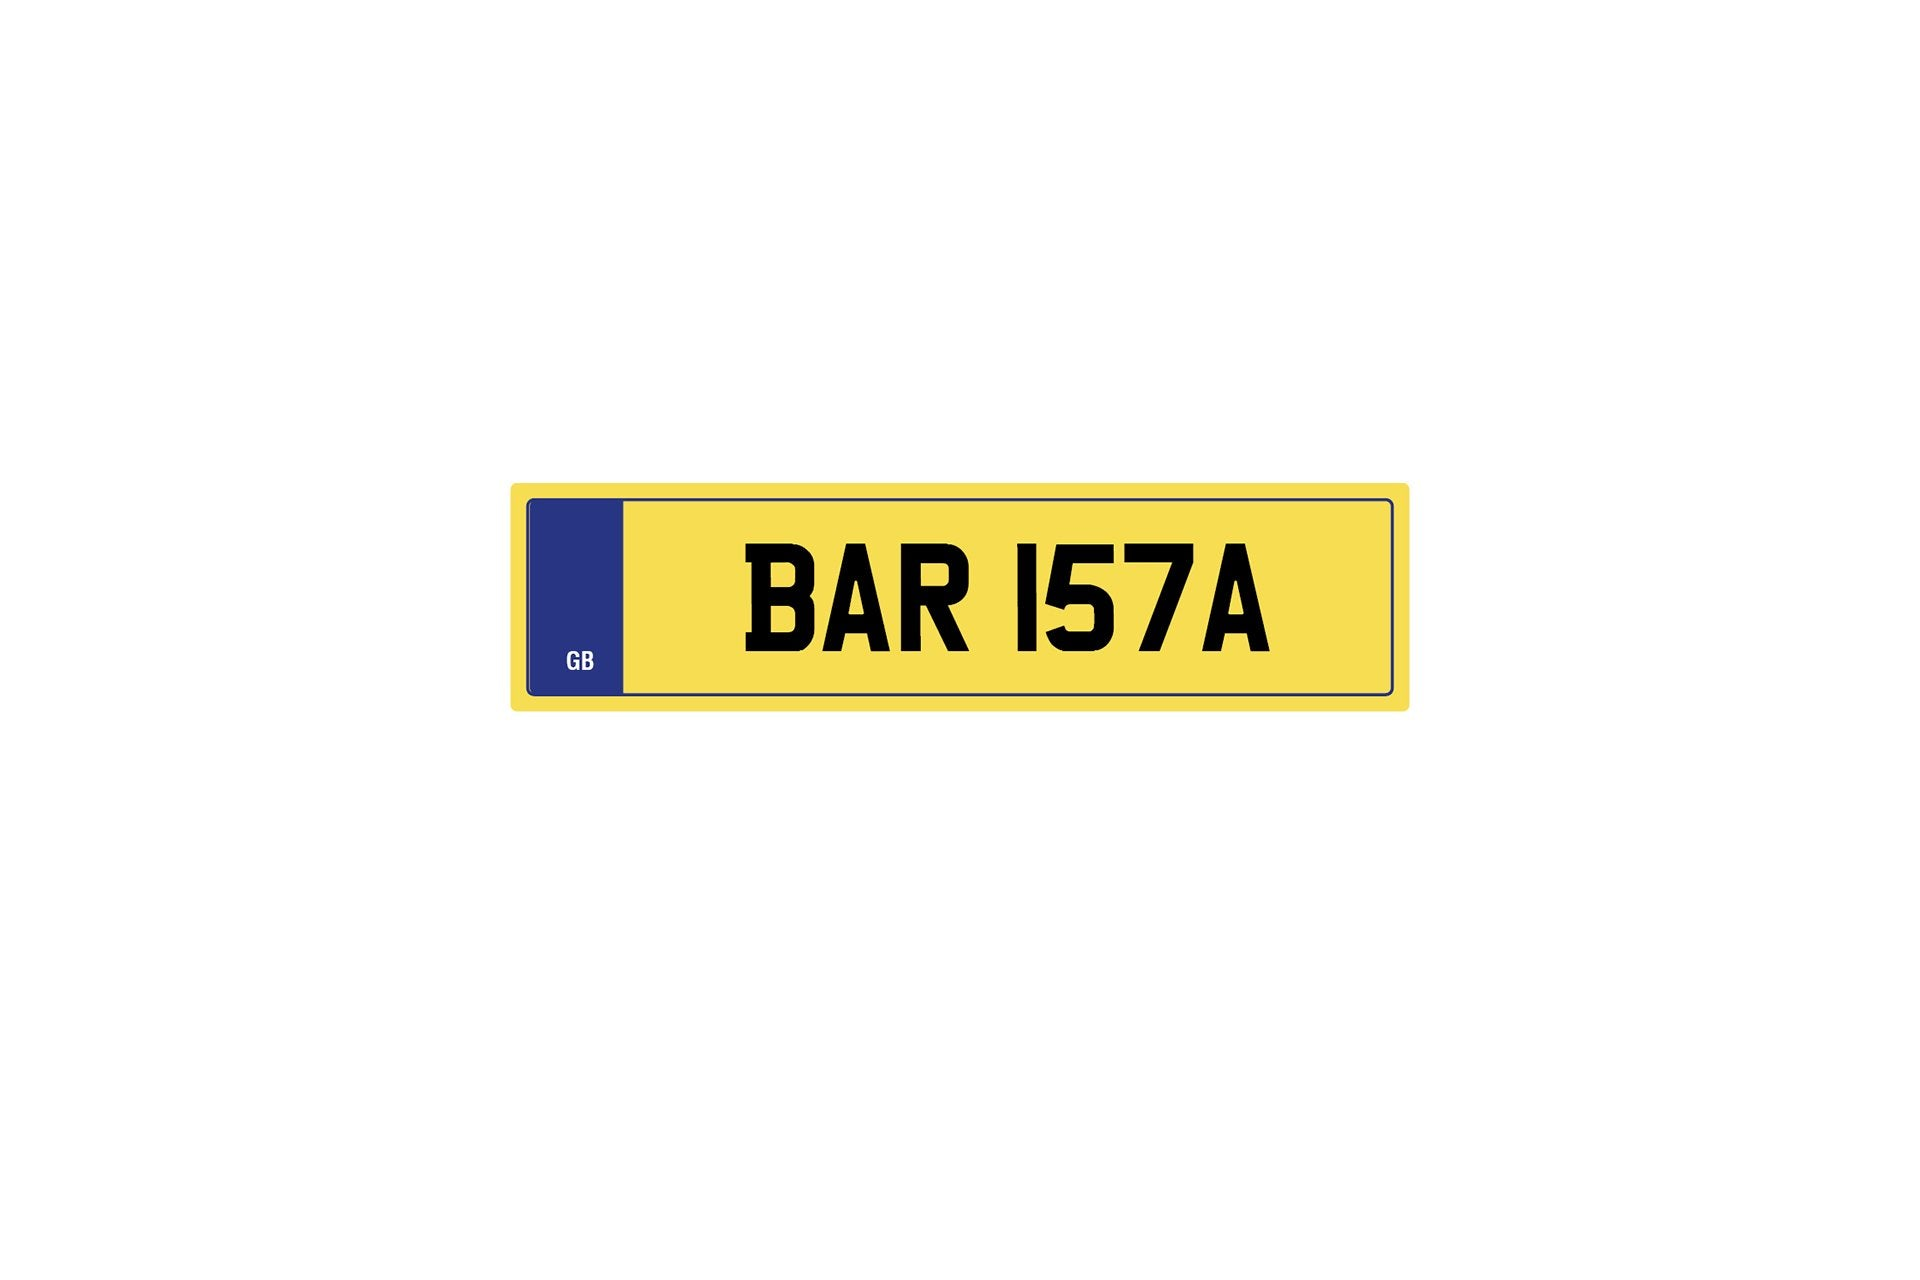 Private Plate Bar 157A by Kahn - Image 227